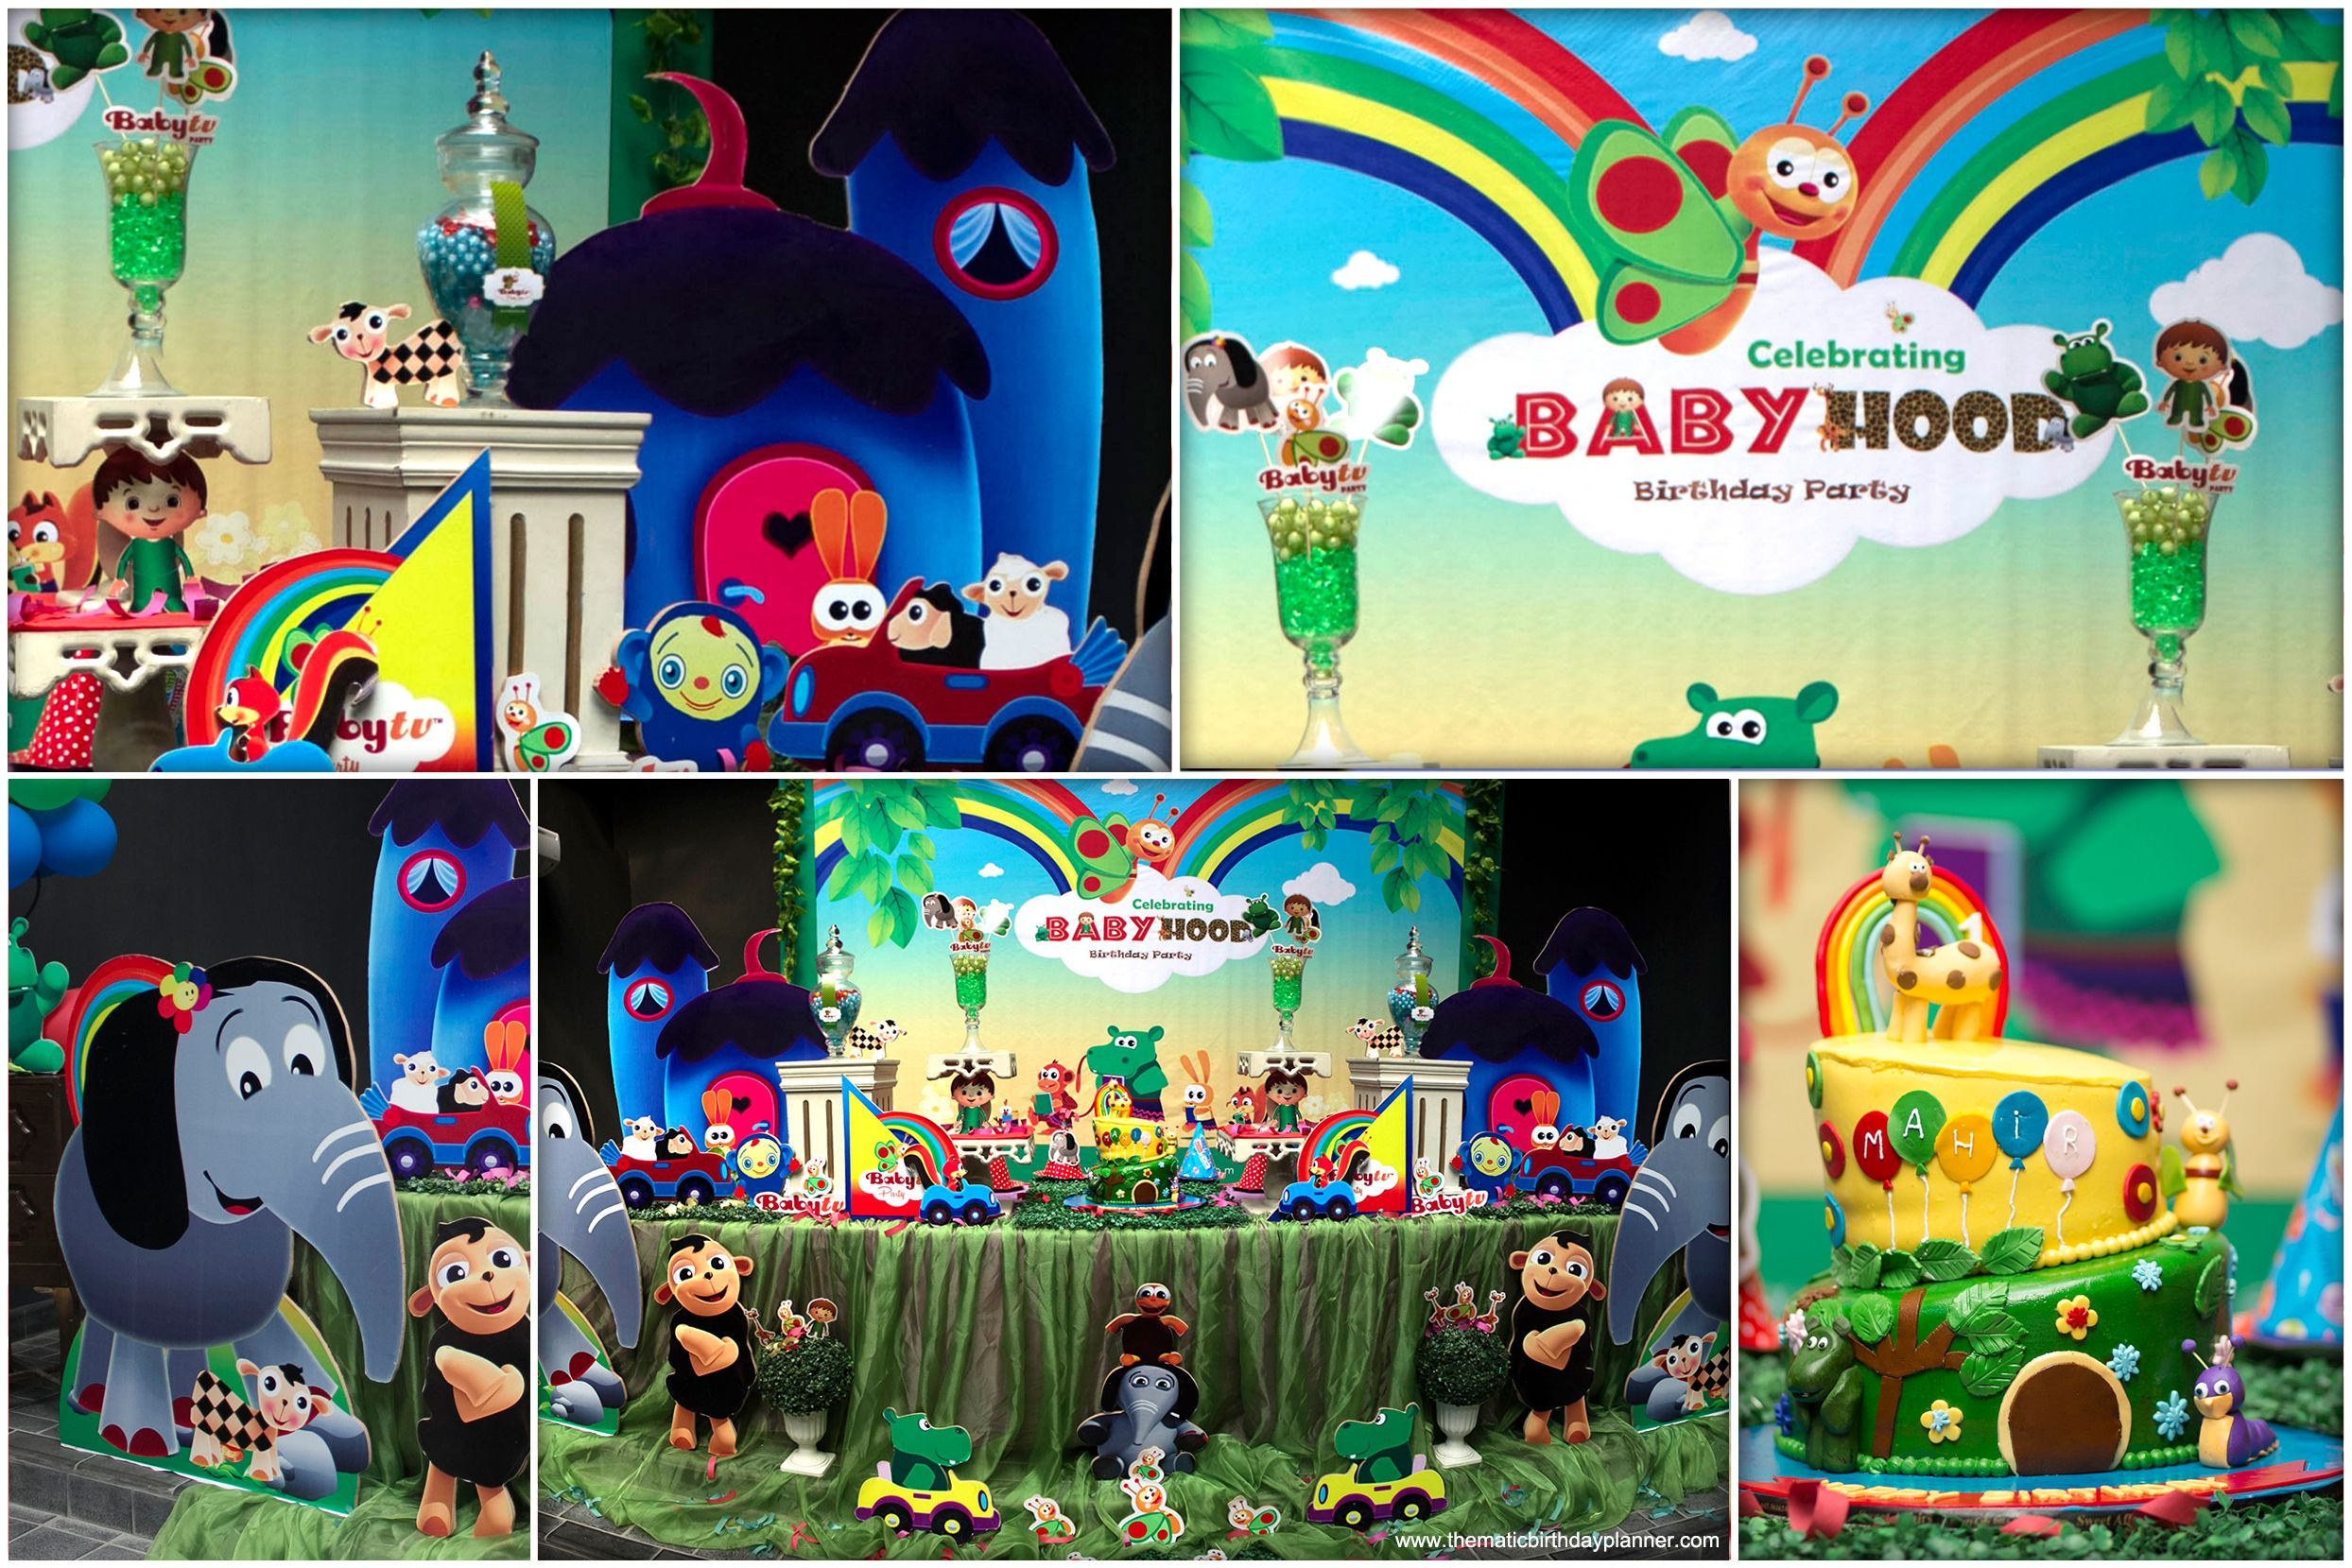 Babytv Themed Party With Baby Hood Birthday Party Arrangements Ideas